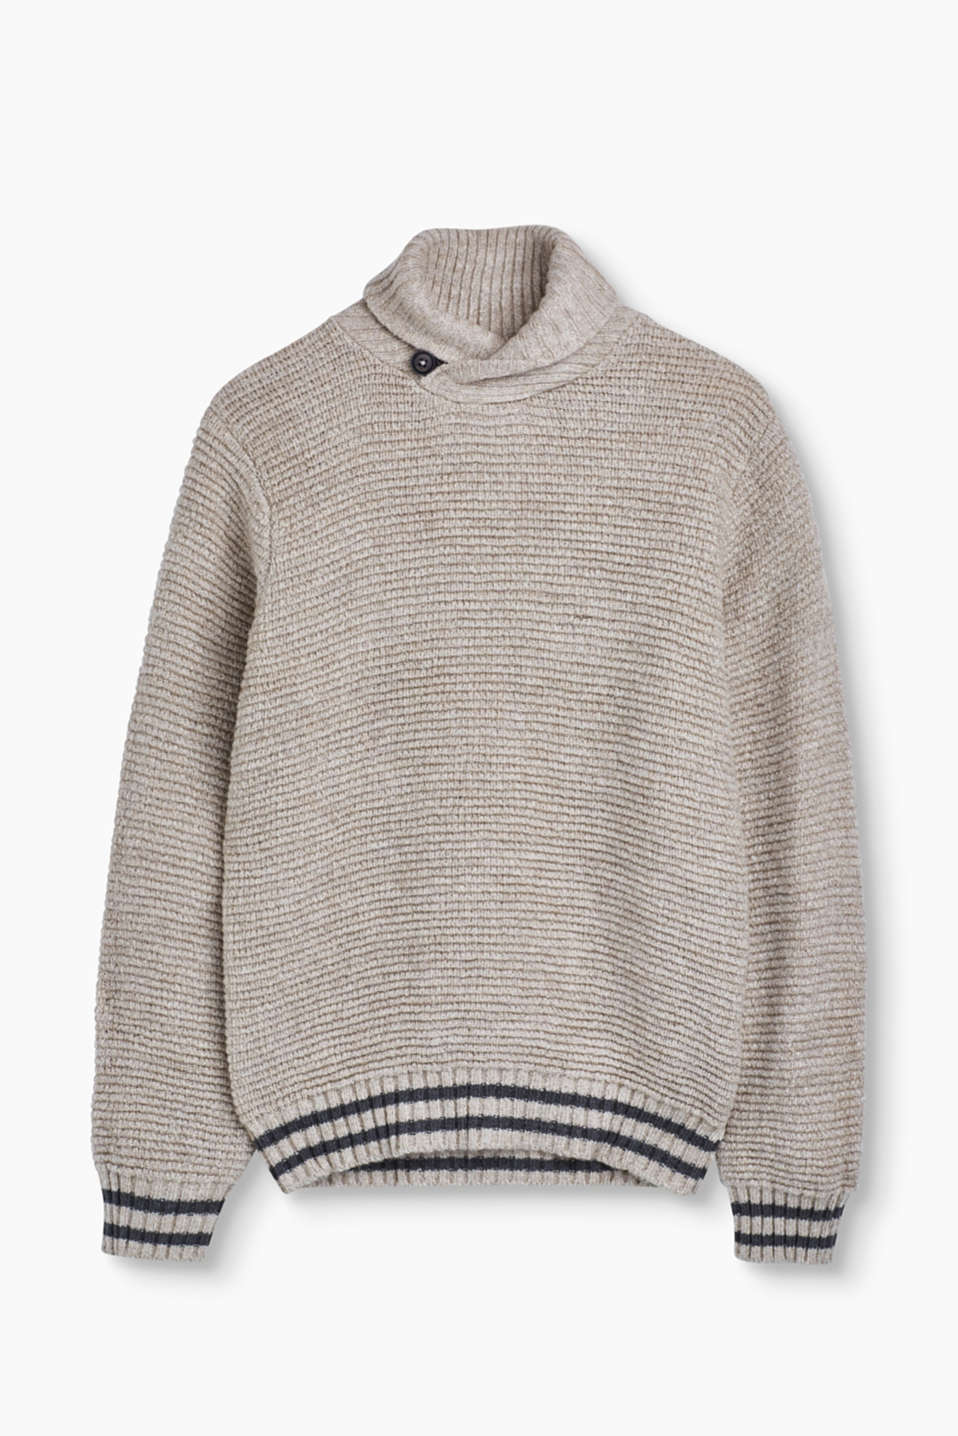 A favourite piece for cold days: Textured jumper with a beautiful shawl collar in insulating wool.